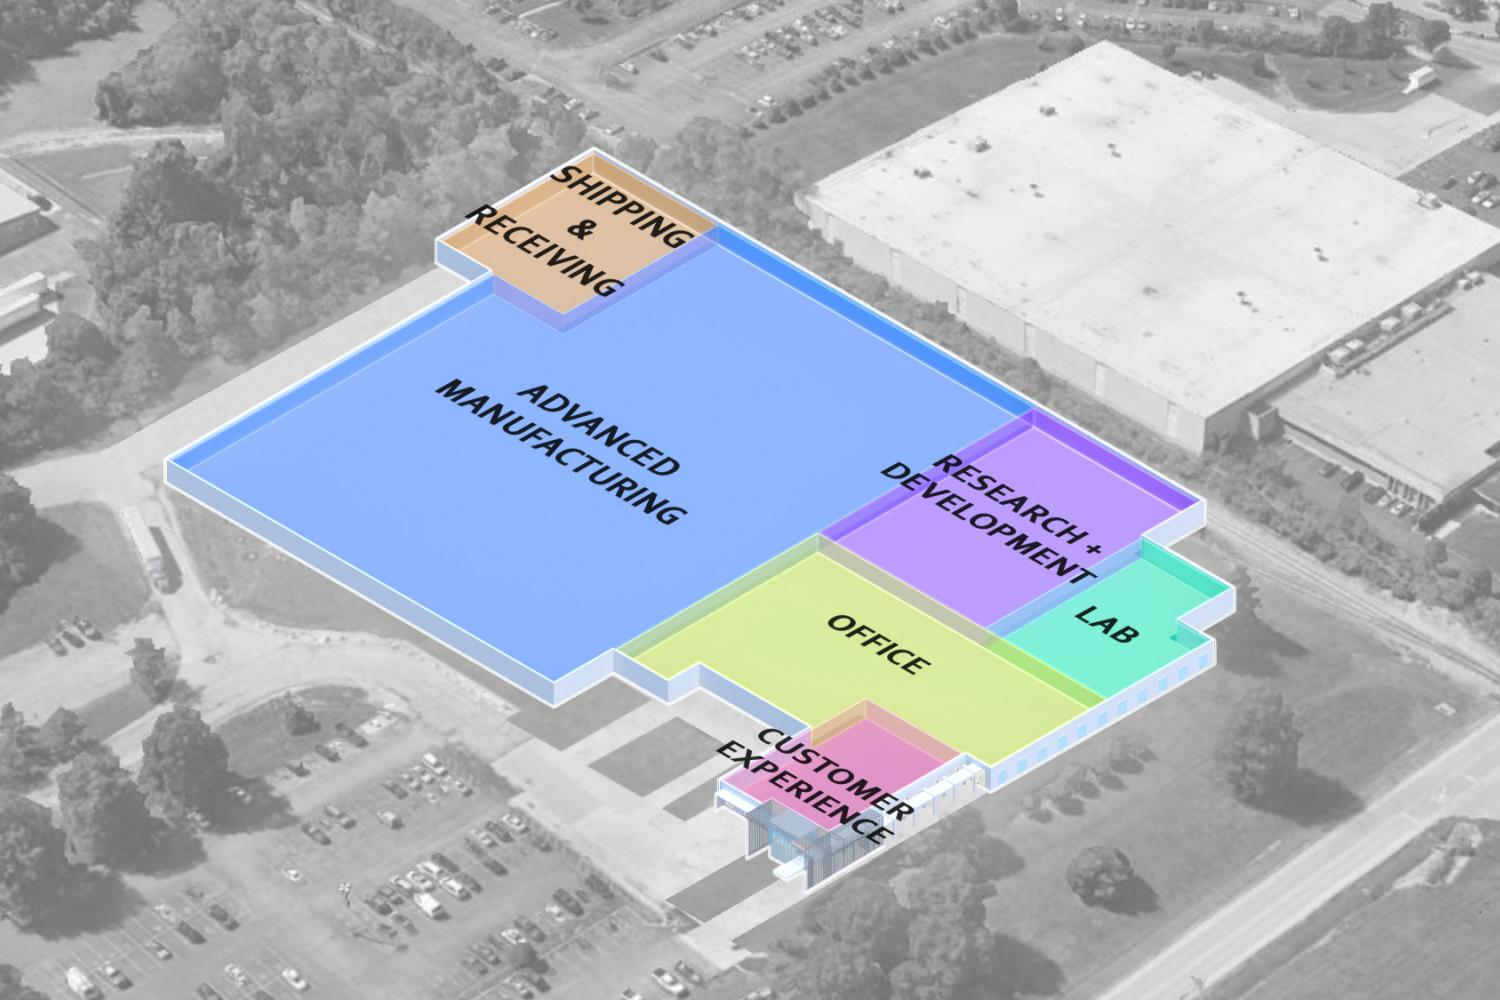 Summit Innovation Center Zone Diagram